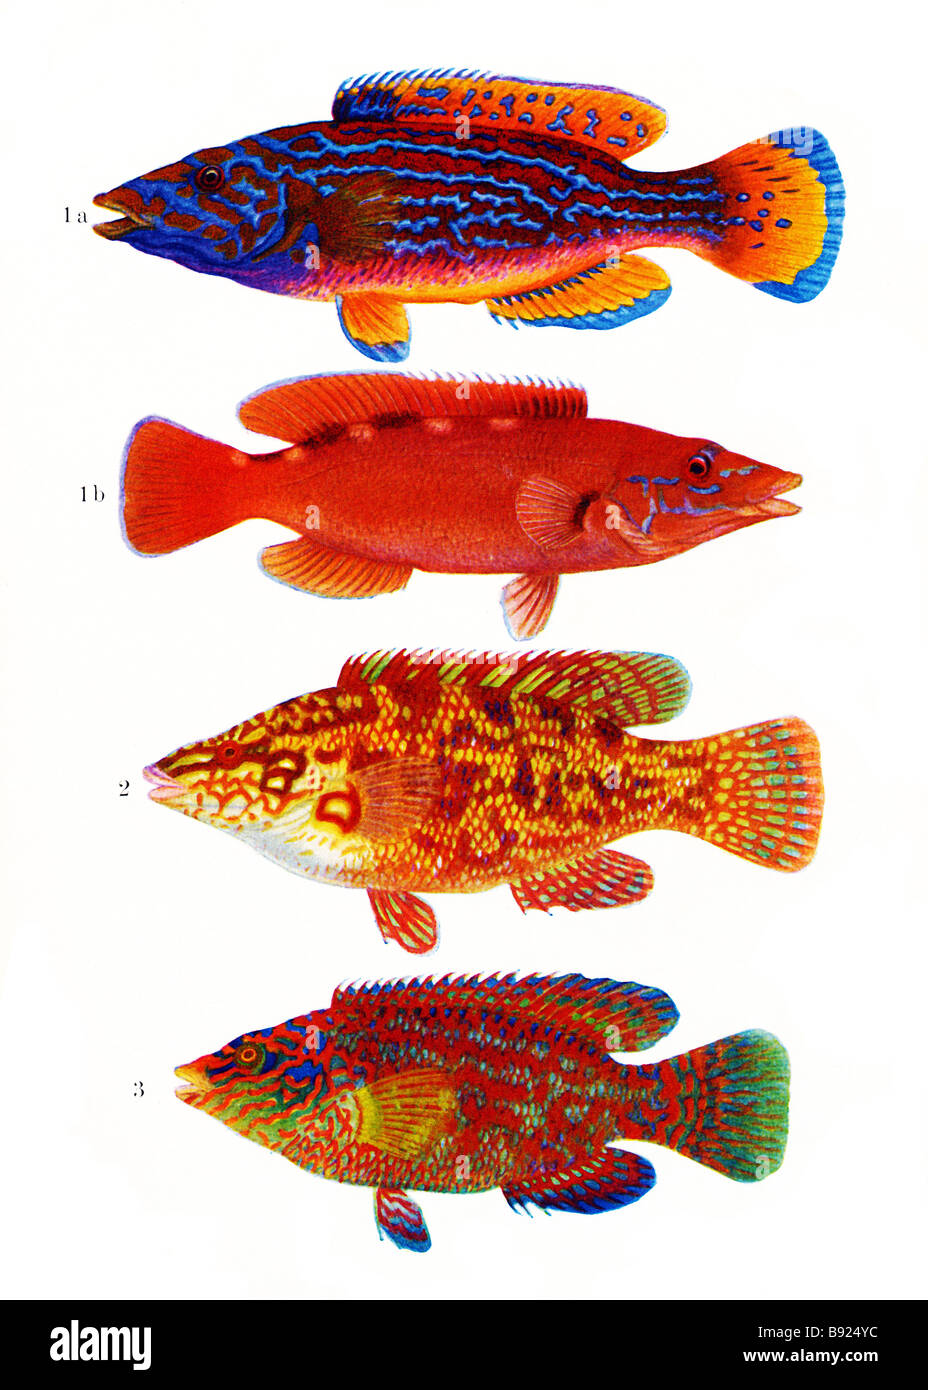 From top; Cuckoo Wrasse, male, Cuckoo Wrasse, female, Ballan wrasse, Corkwing wrasse, Illustration by Olof Gylling Stock Photo